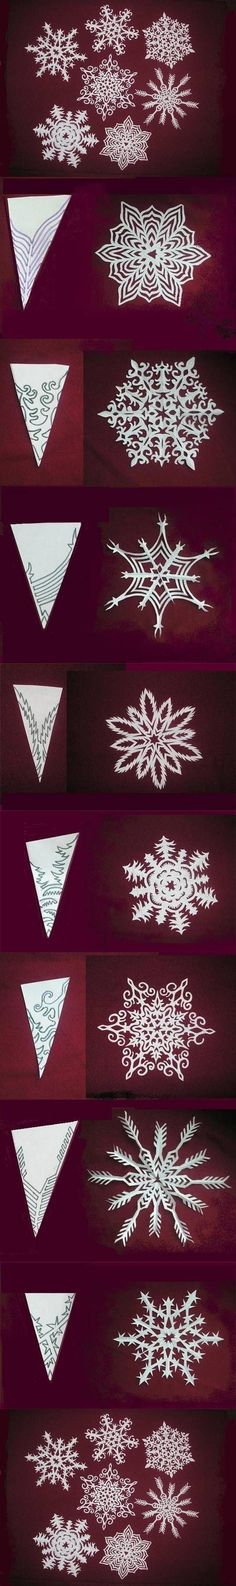 DIY Snowflakes Paper Pattern Tutorial DIY Projects | UsefulDIY.com